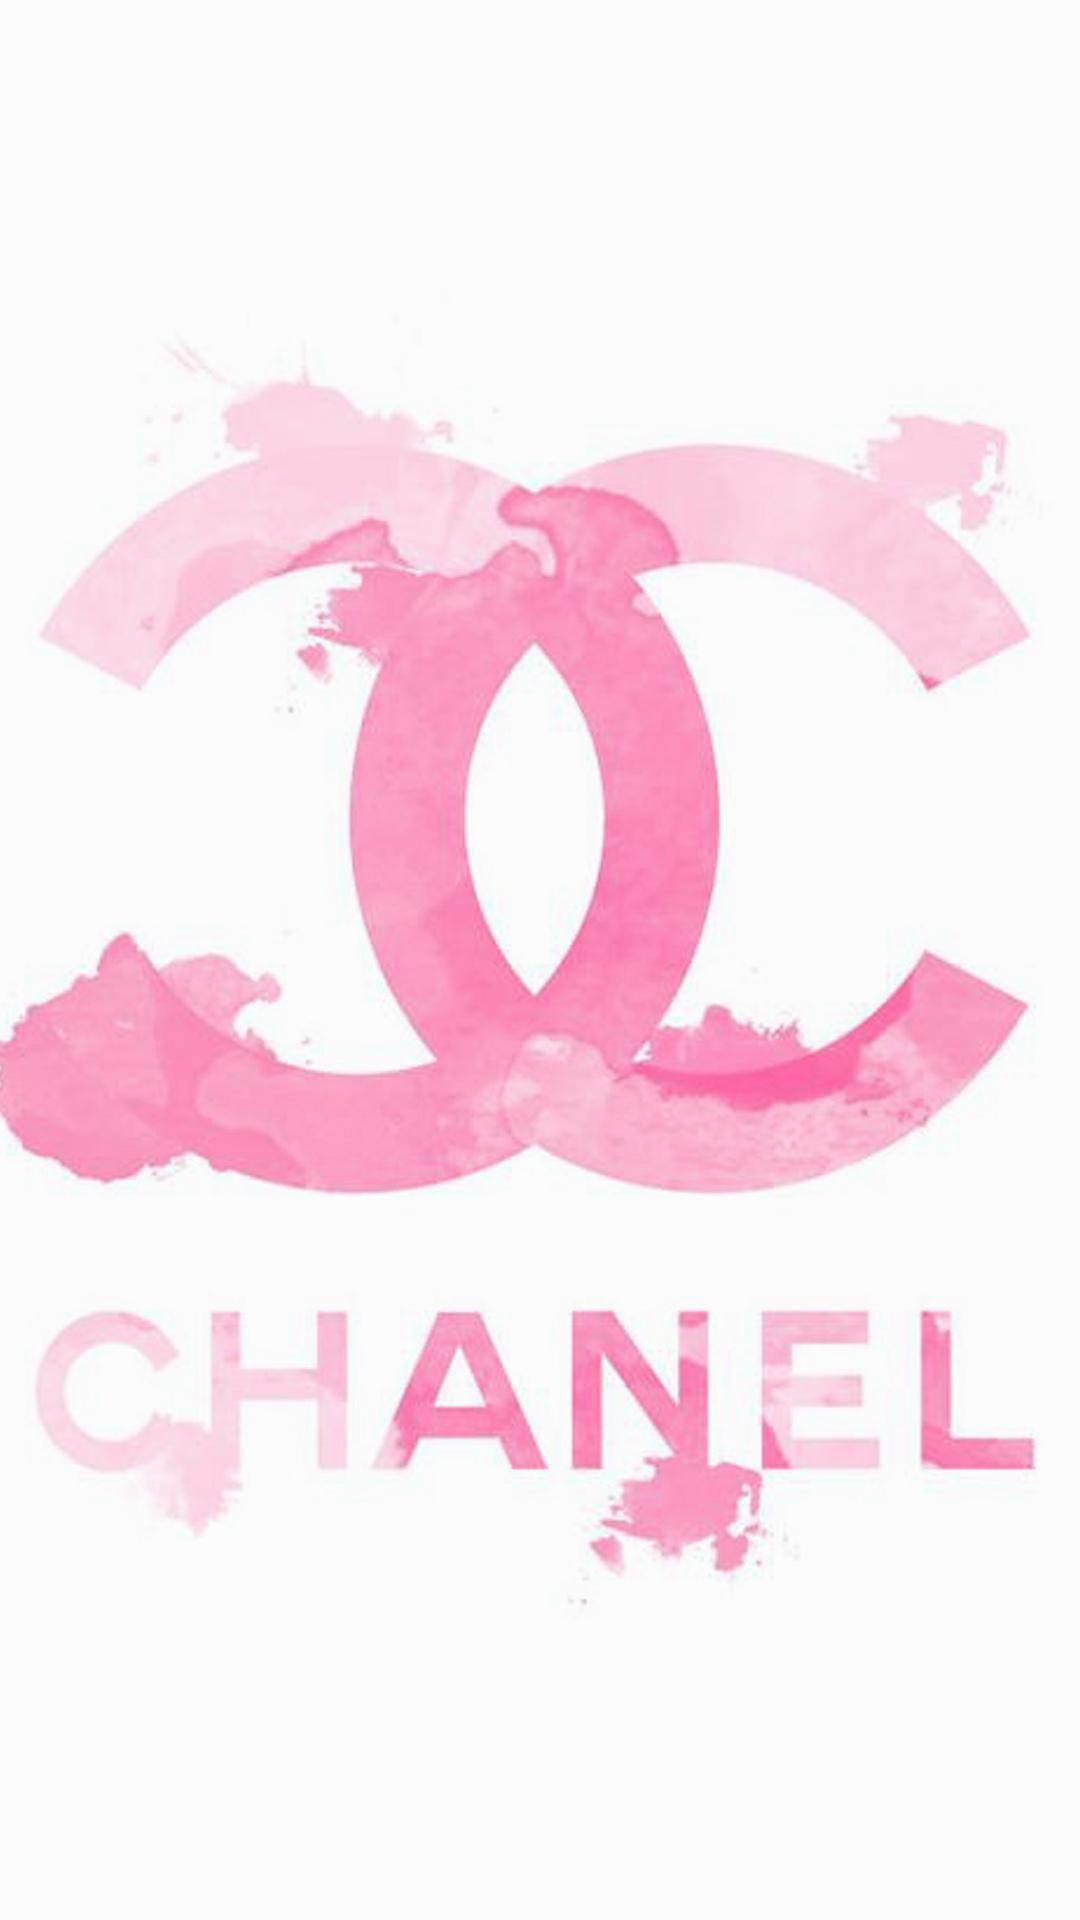 Cellphone Wallpaper Hd Quote Pink Chanel Wallpaper 54 Images